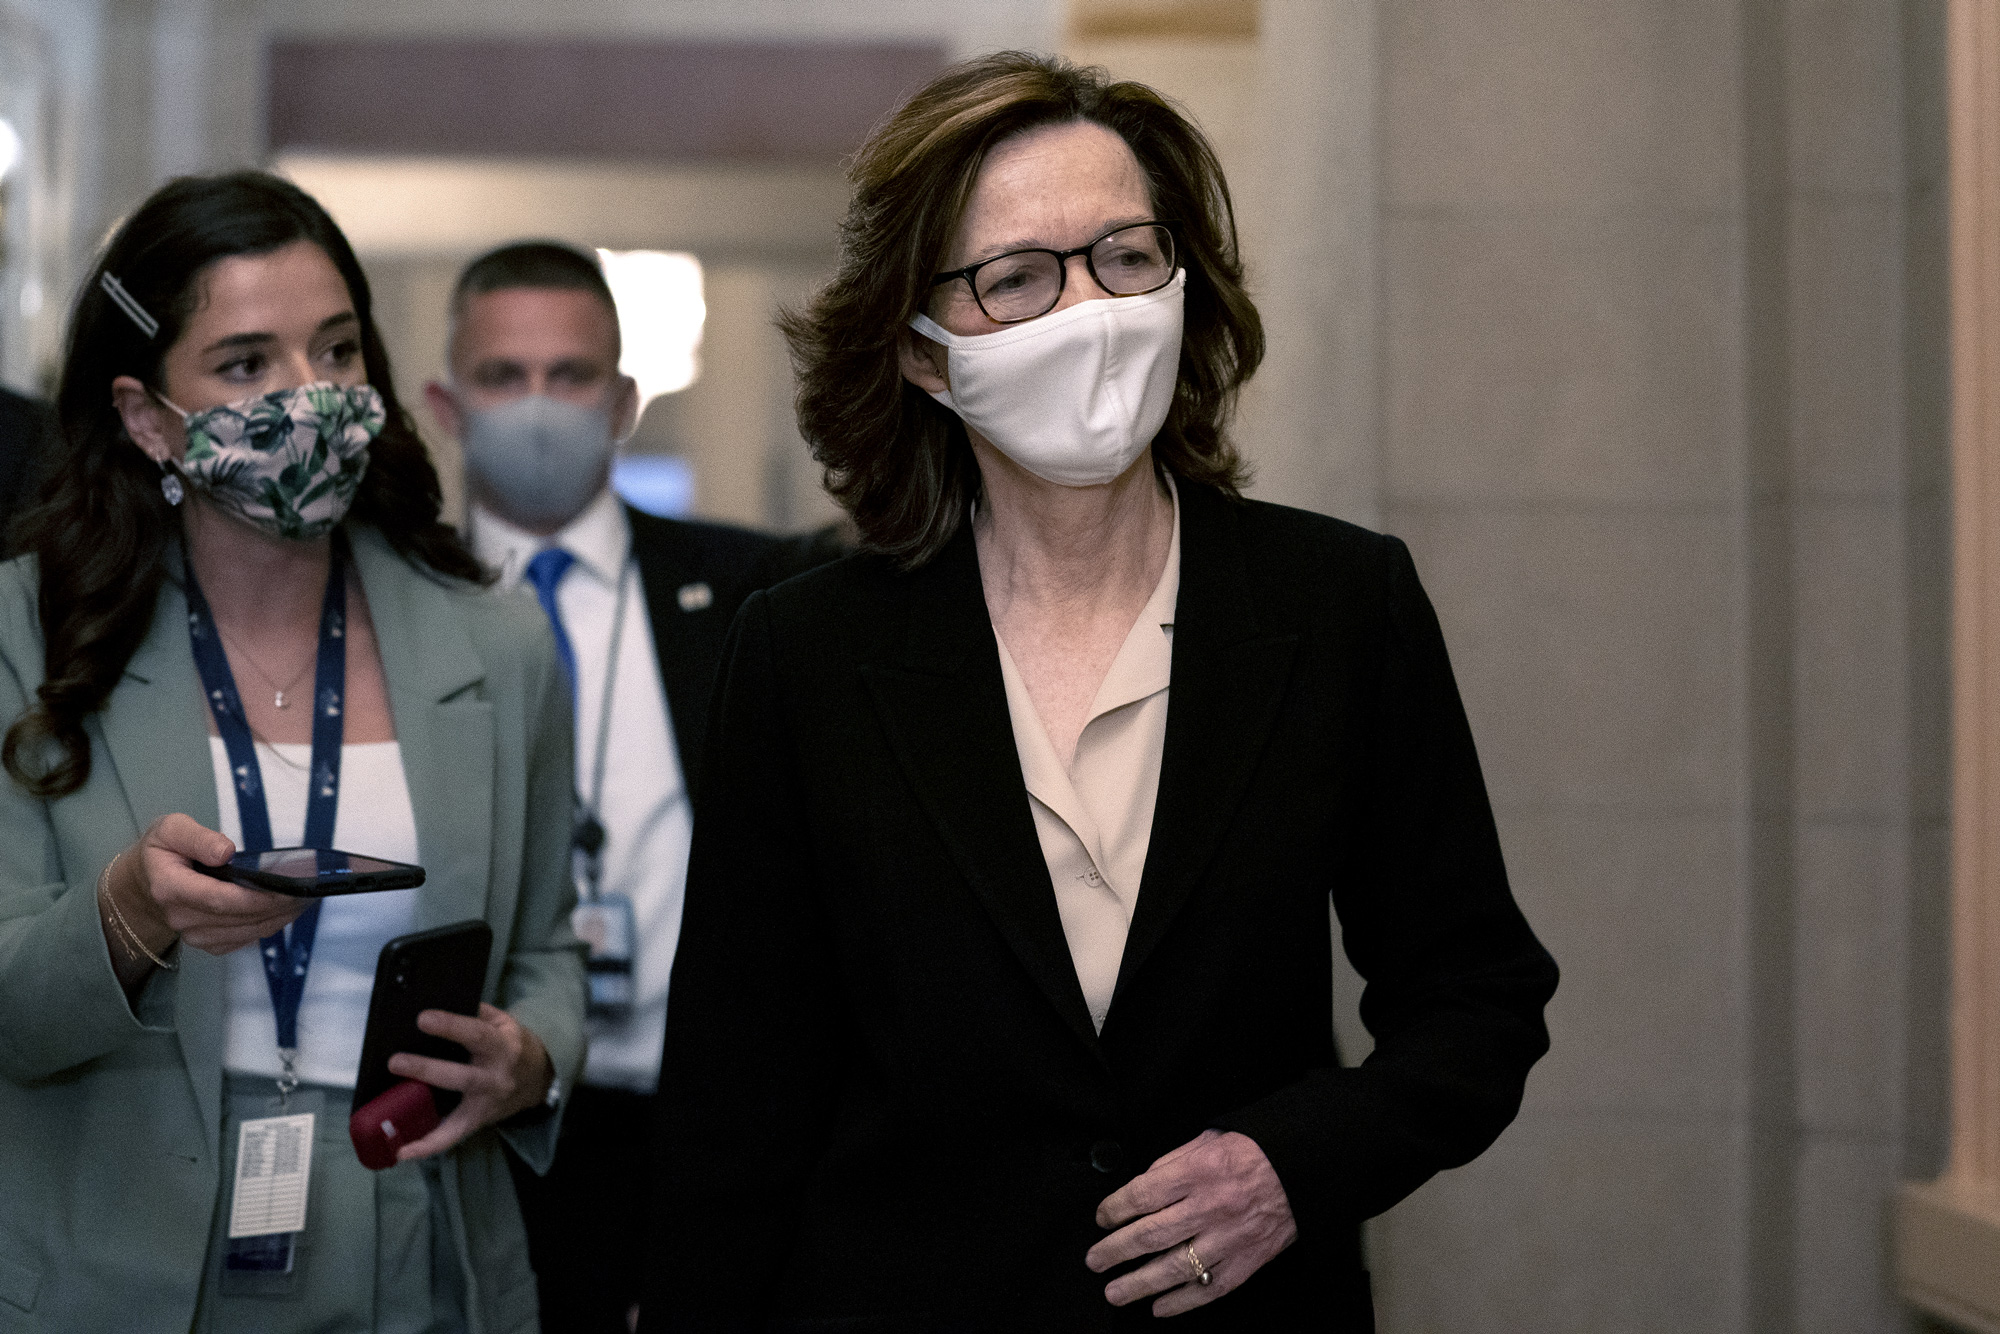 Gina Haspel, director of the Central Intelligence Agency, right, arrives for a meeting at the U.S. Capitol in Washington, D.C., on November 10.